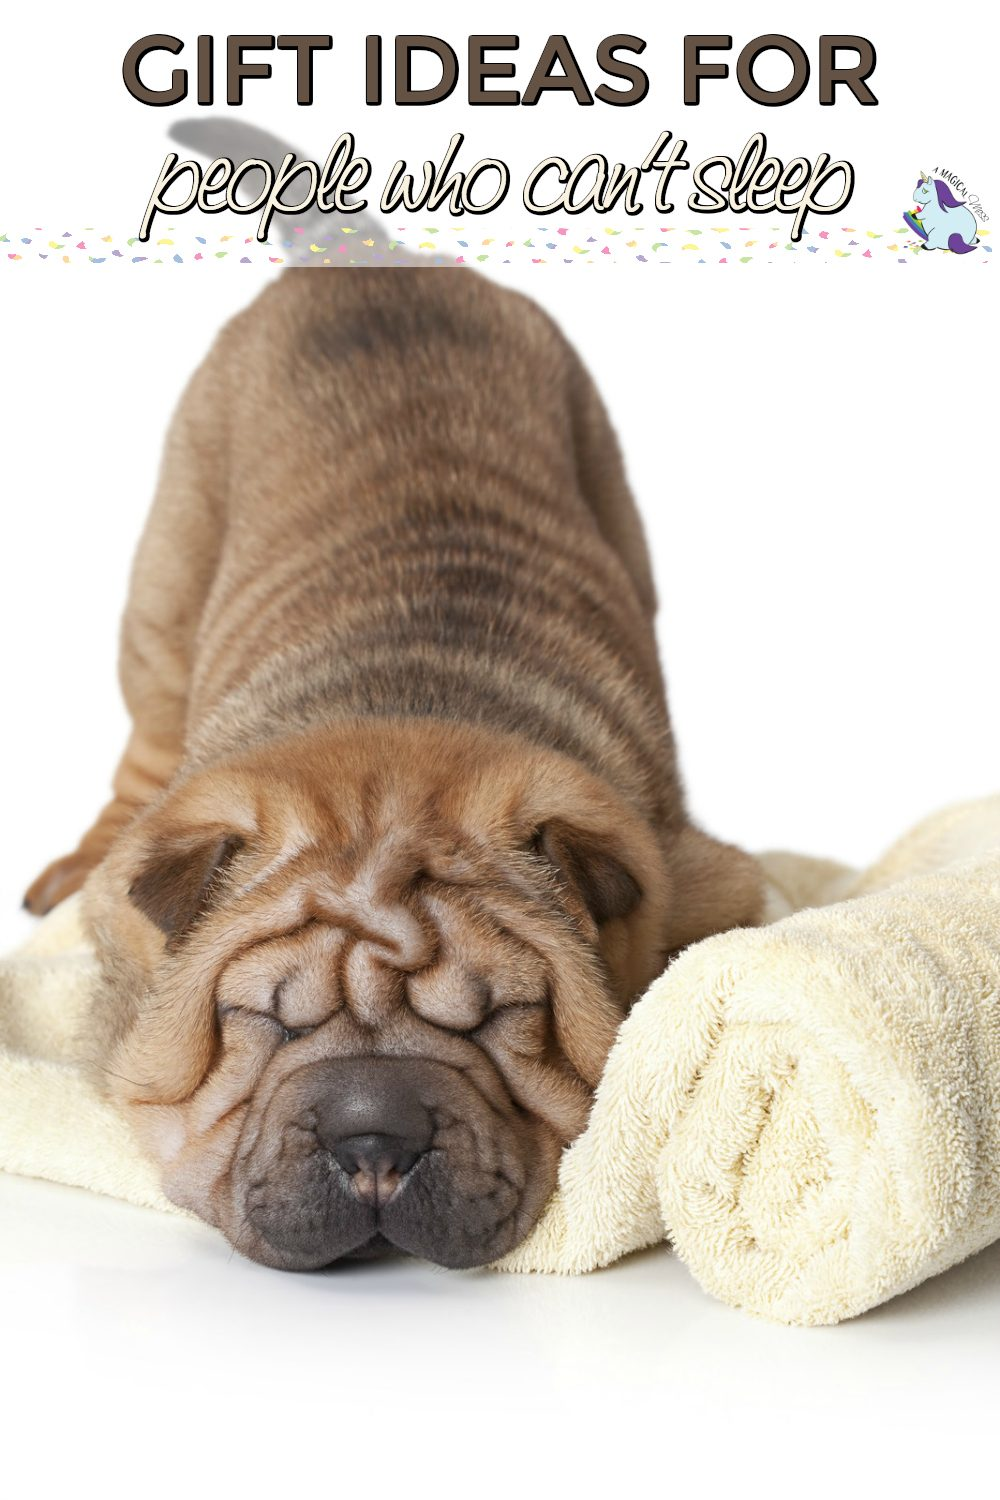 Wrinkly dog who looks sleepy